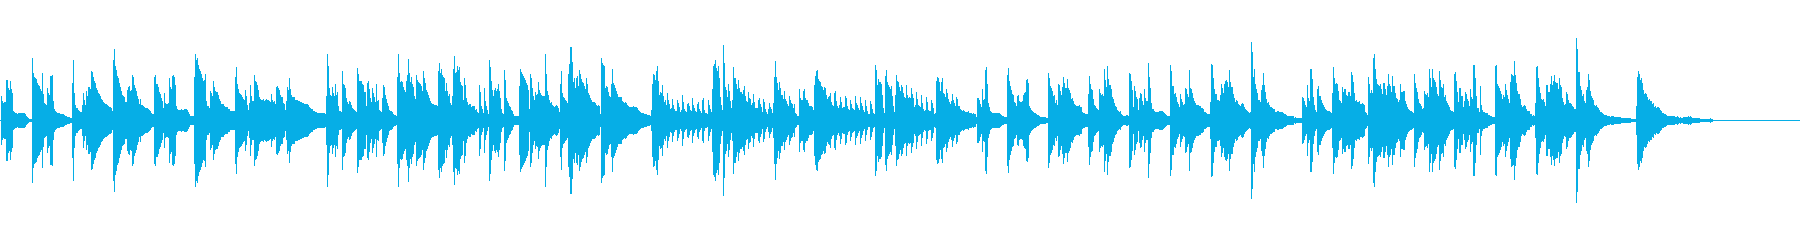 Playmate in the scene thinking alone's reproduced waveform